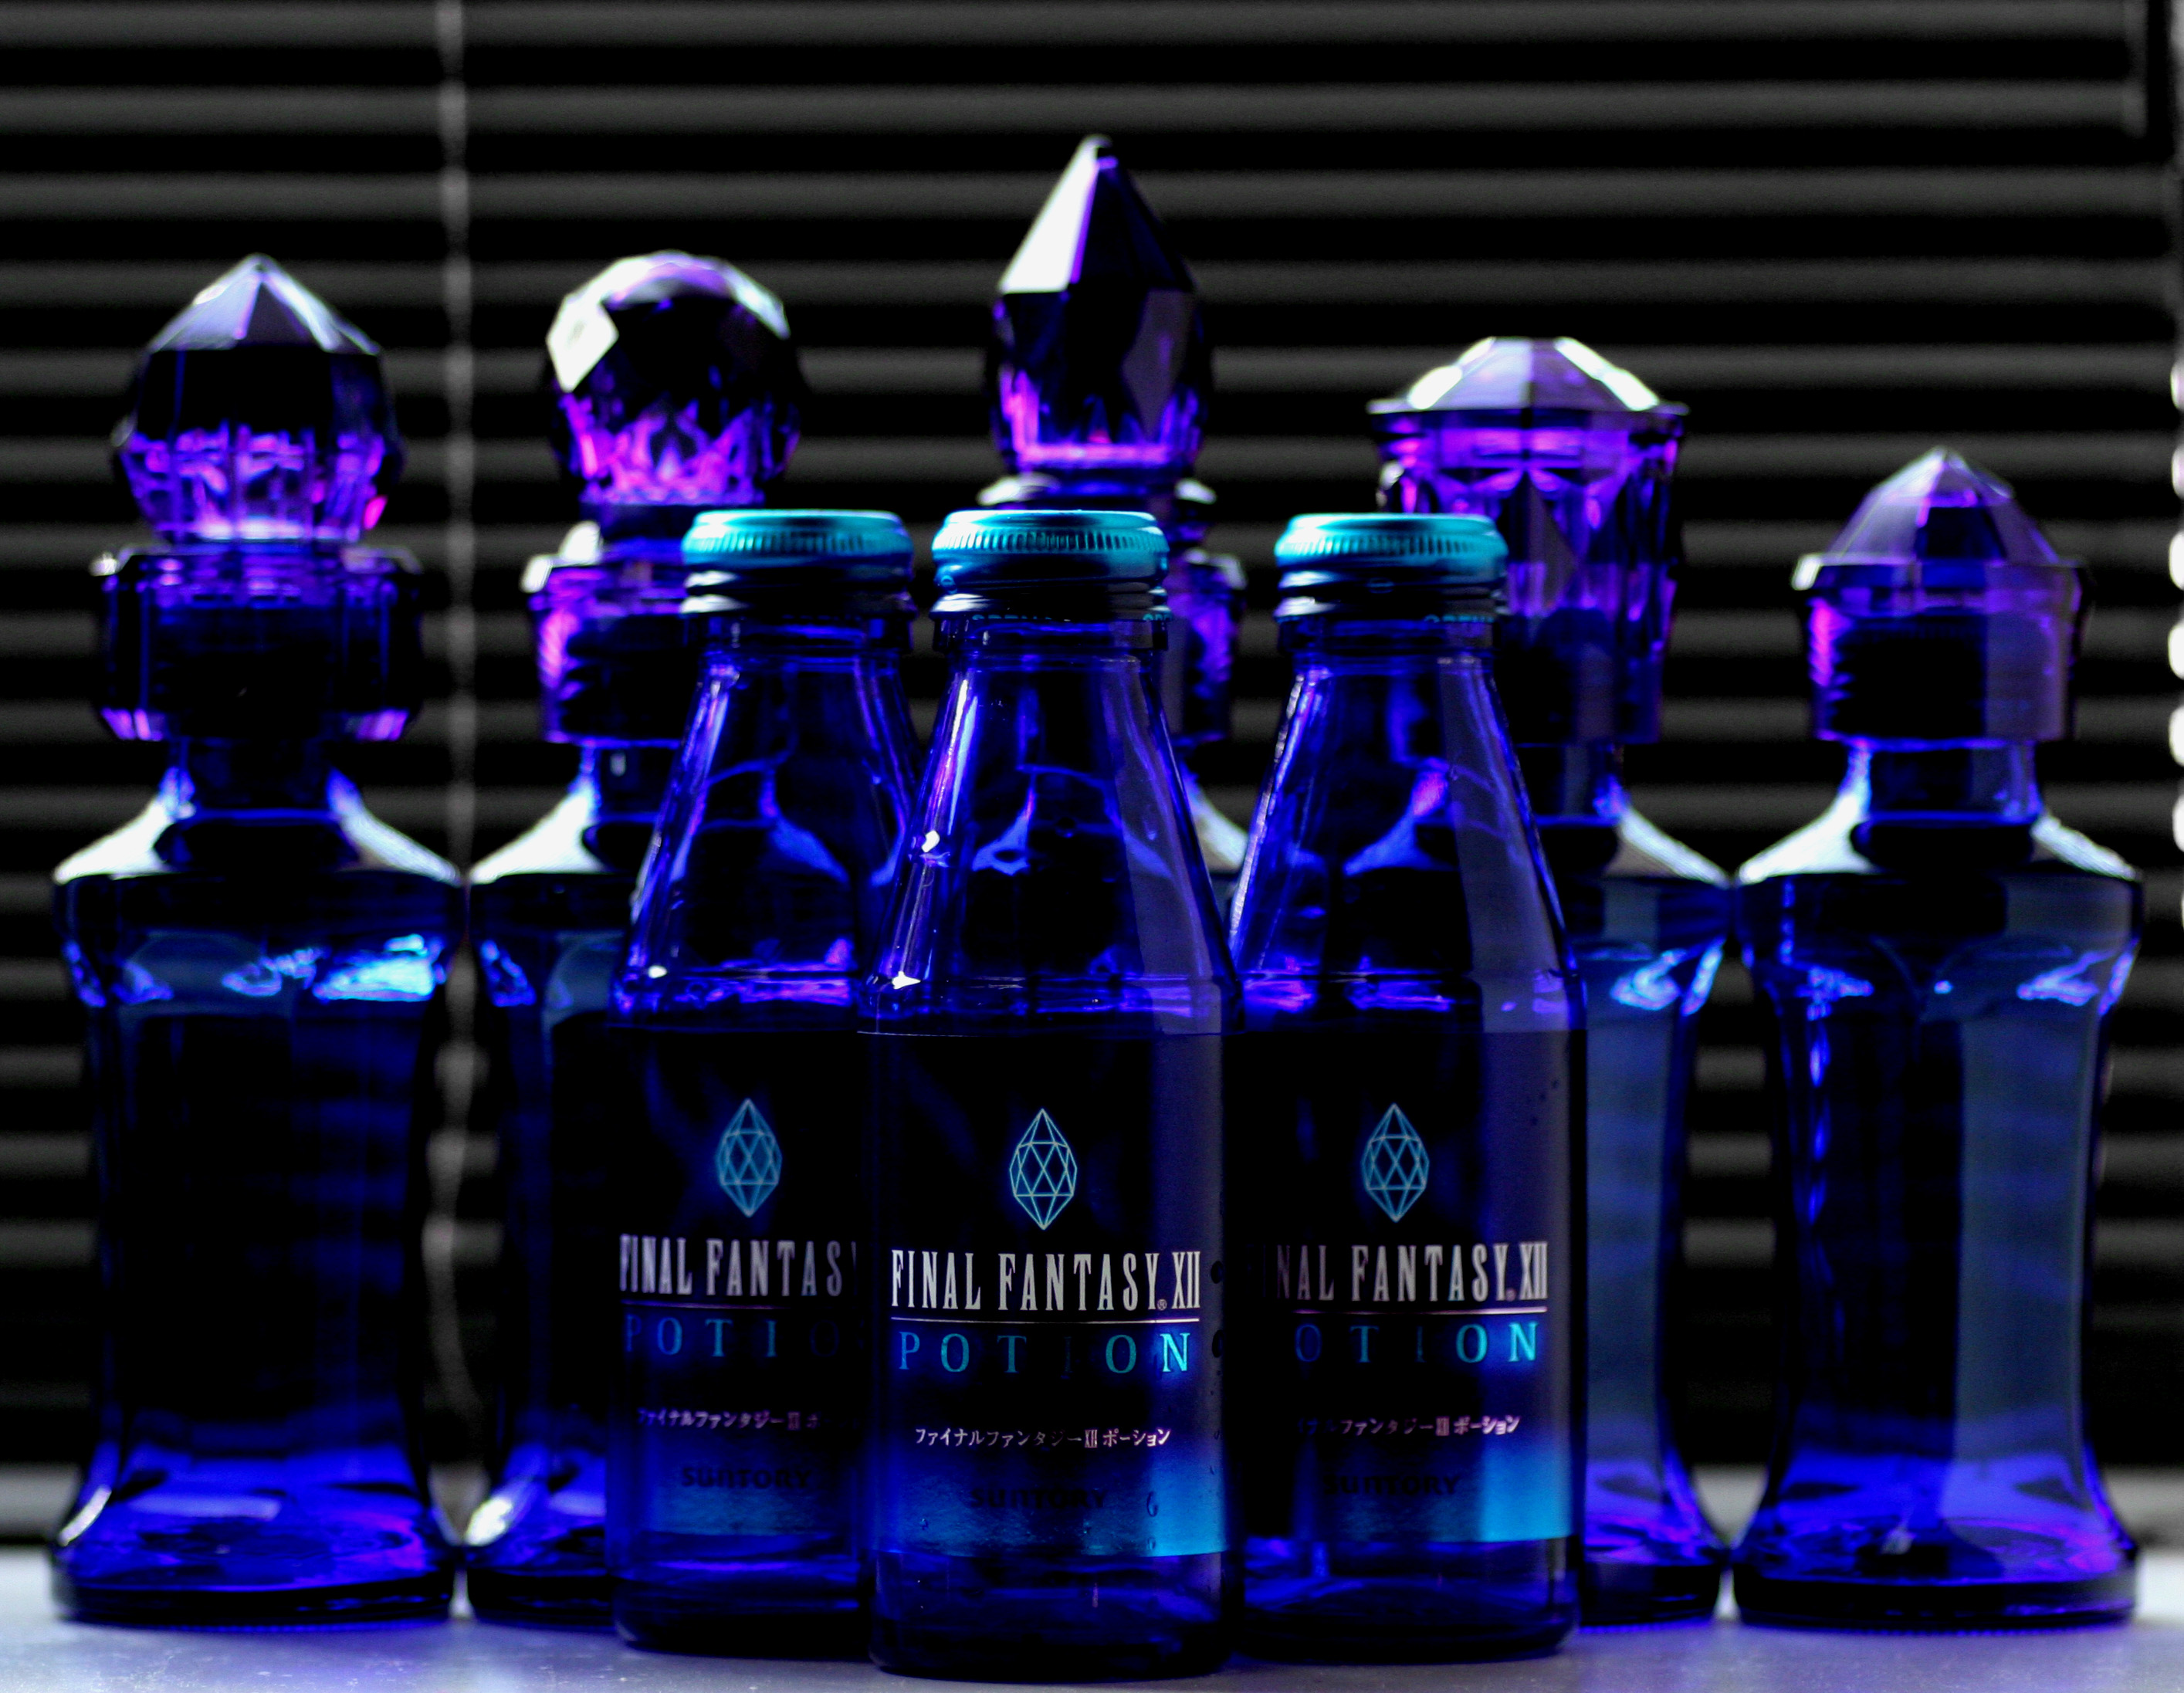 File:Final Fantasy XII Potions.jpg - Wikipedia, the free encyclopedia